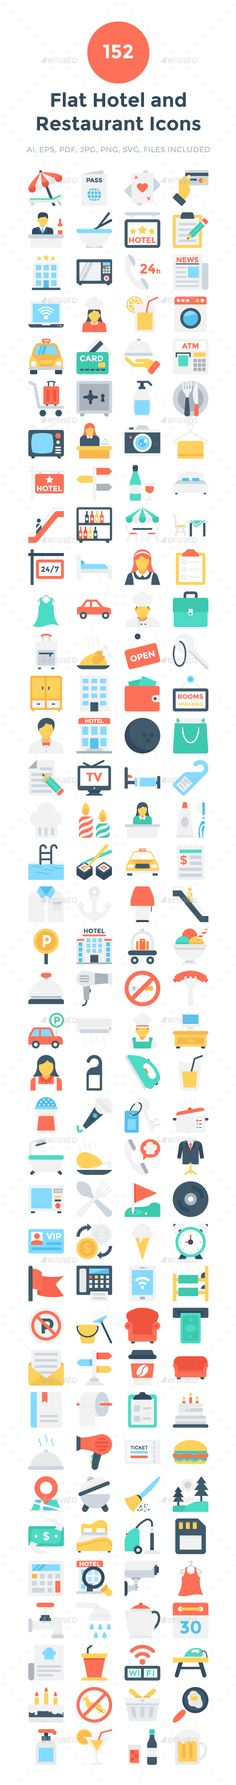 152 Flat Hotel and Restaurant Icons